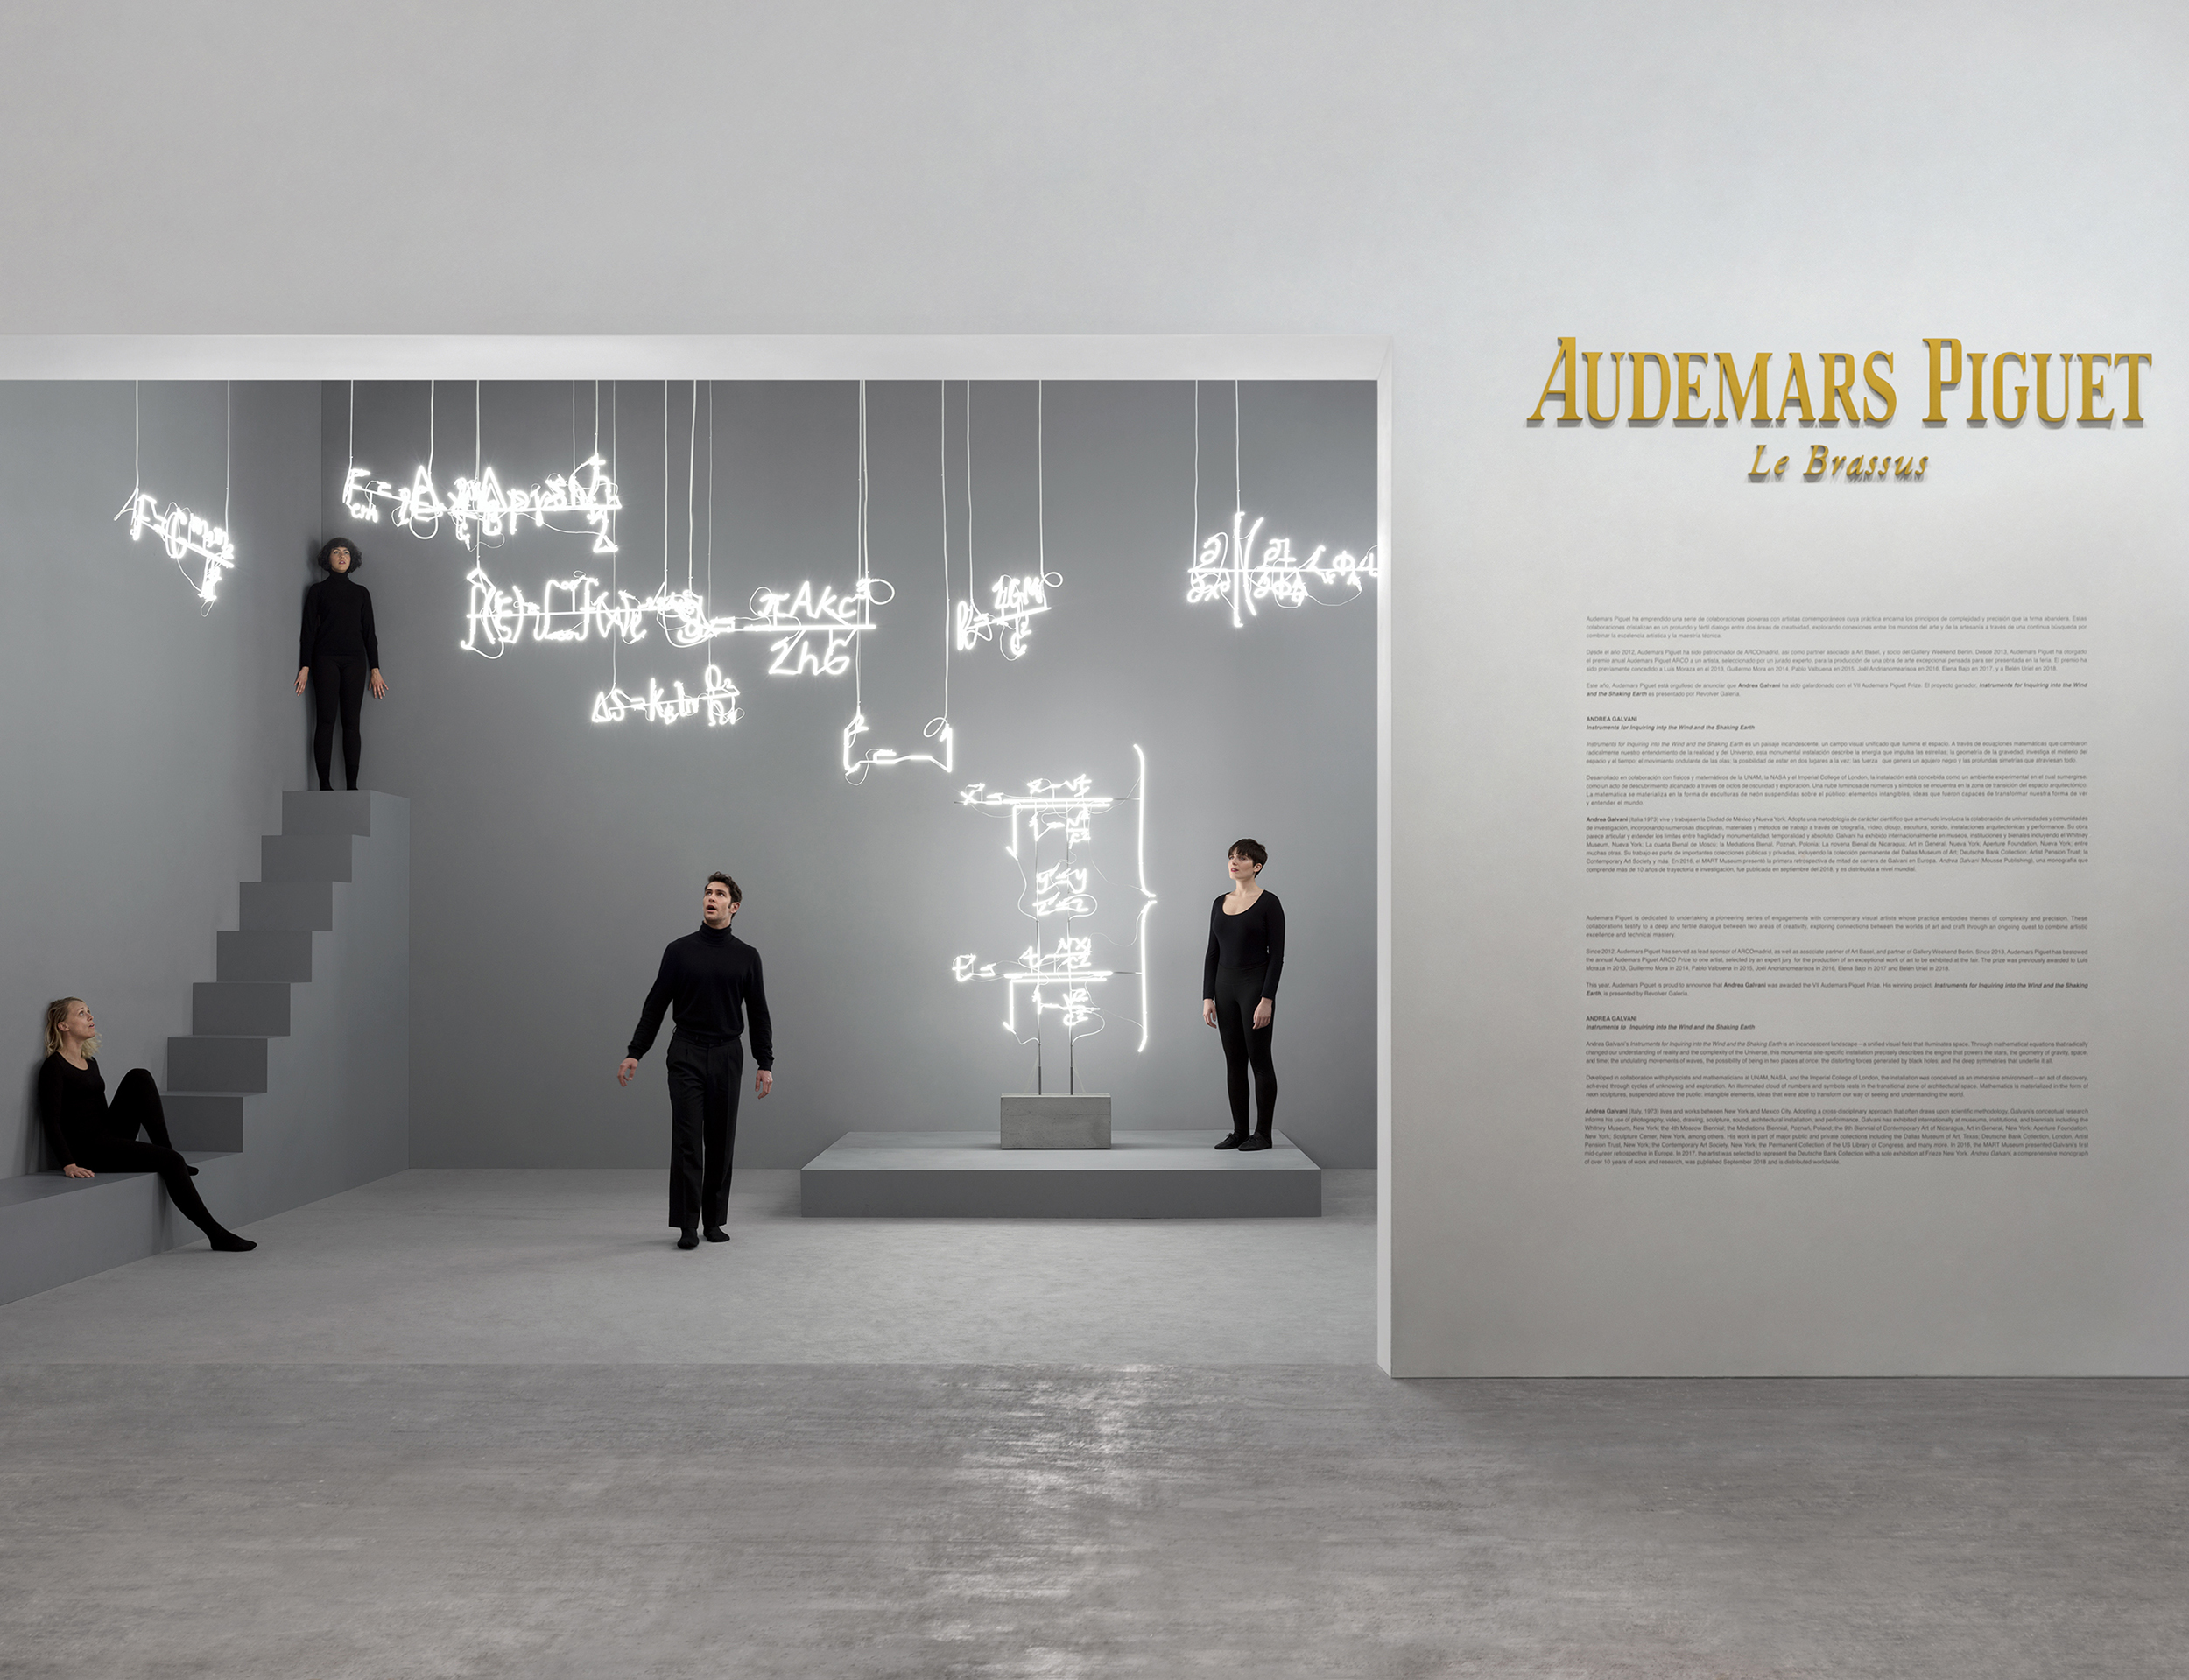 "VII PREMIO AUDEMARS PIGUET  ARCOmadrid 2019 Revolver Galería 27 February - 3 March 2019  Andrea Galvani has been awarded the prestigious Audemars Piguet Prize for the production of a work of art at ARCOmadrid 2019. His project, presented by Revolver Galería, will be exhibited at the Audemars Piguet stand at the fair. The jury, composed of Javier Mulins, art critic; Lucía Casani, director of La Casa Encendida; Pilar Lladó, collector; Eduardo Rivero, collector; Enric Pastor, director of AD; Eloy Martínez de la Pera, art consultant at Audemars Piguet Iberia; Winka Angelrath, director of exhibitions at Audemars Piguet; Brian Lavio, general director of Audemars Piguet, and Carlos Urroz, director of ARCOmadrid, emphasize the alignment of his proposal with the spirit of the brand founded upon ""complexity and precision."" The scientific foundation of the award merges with the powerful visual and conceptual experience of Galvani's work, which includes a performance that will activate the entire space of the installation at certain times during the fair."